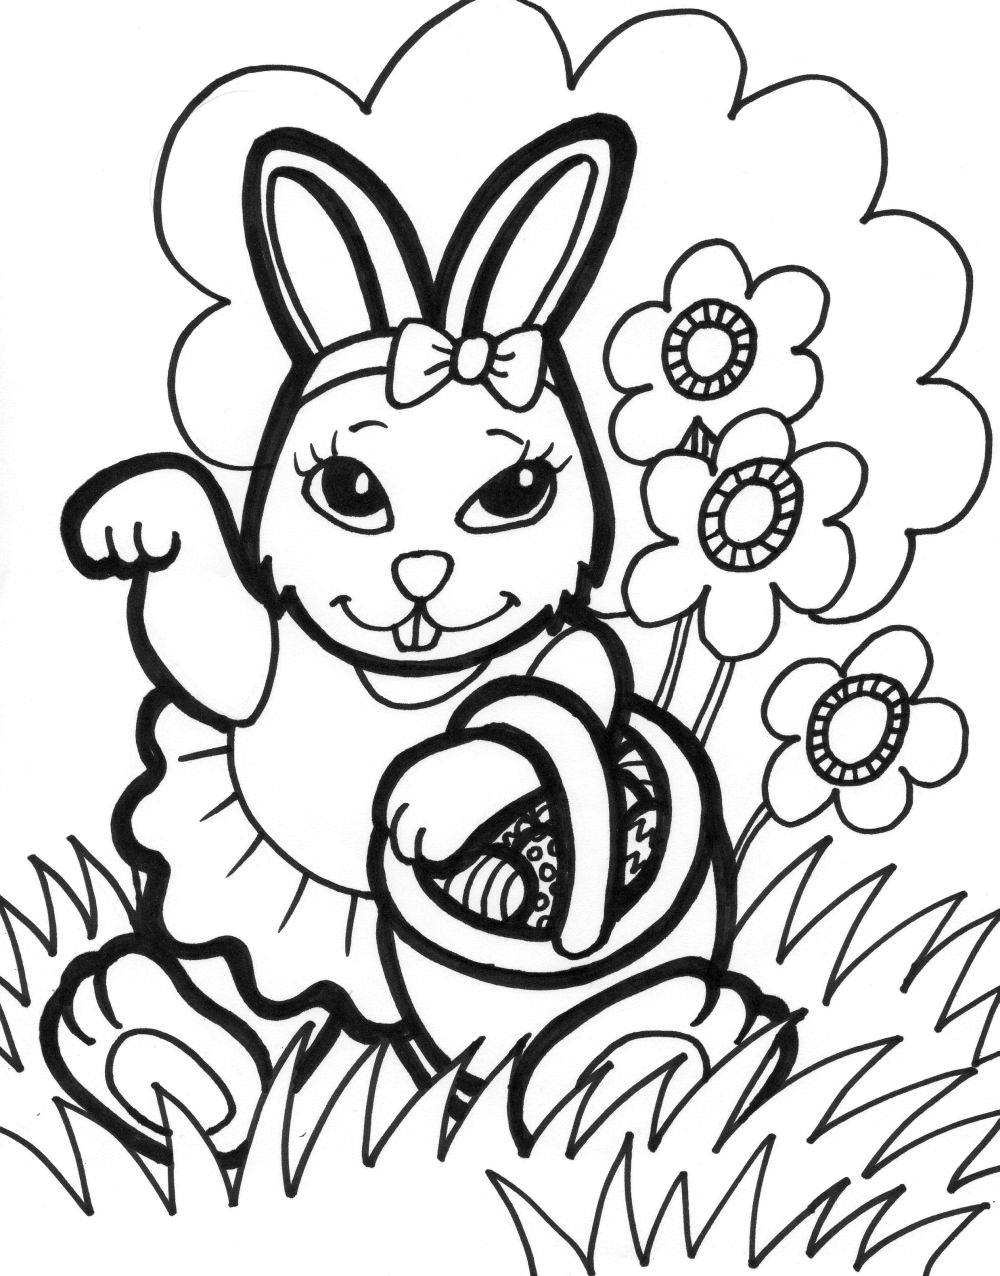 Bunny Coloring Pages Free Peter Coniglio20 Disegni Da Colorare Of